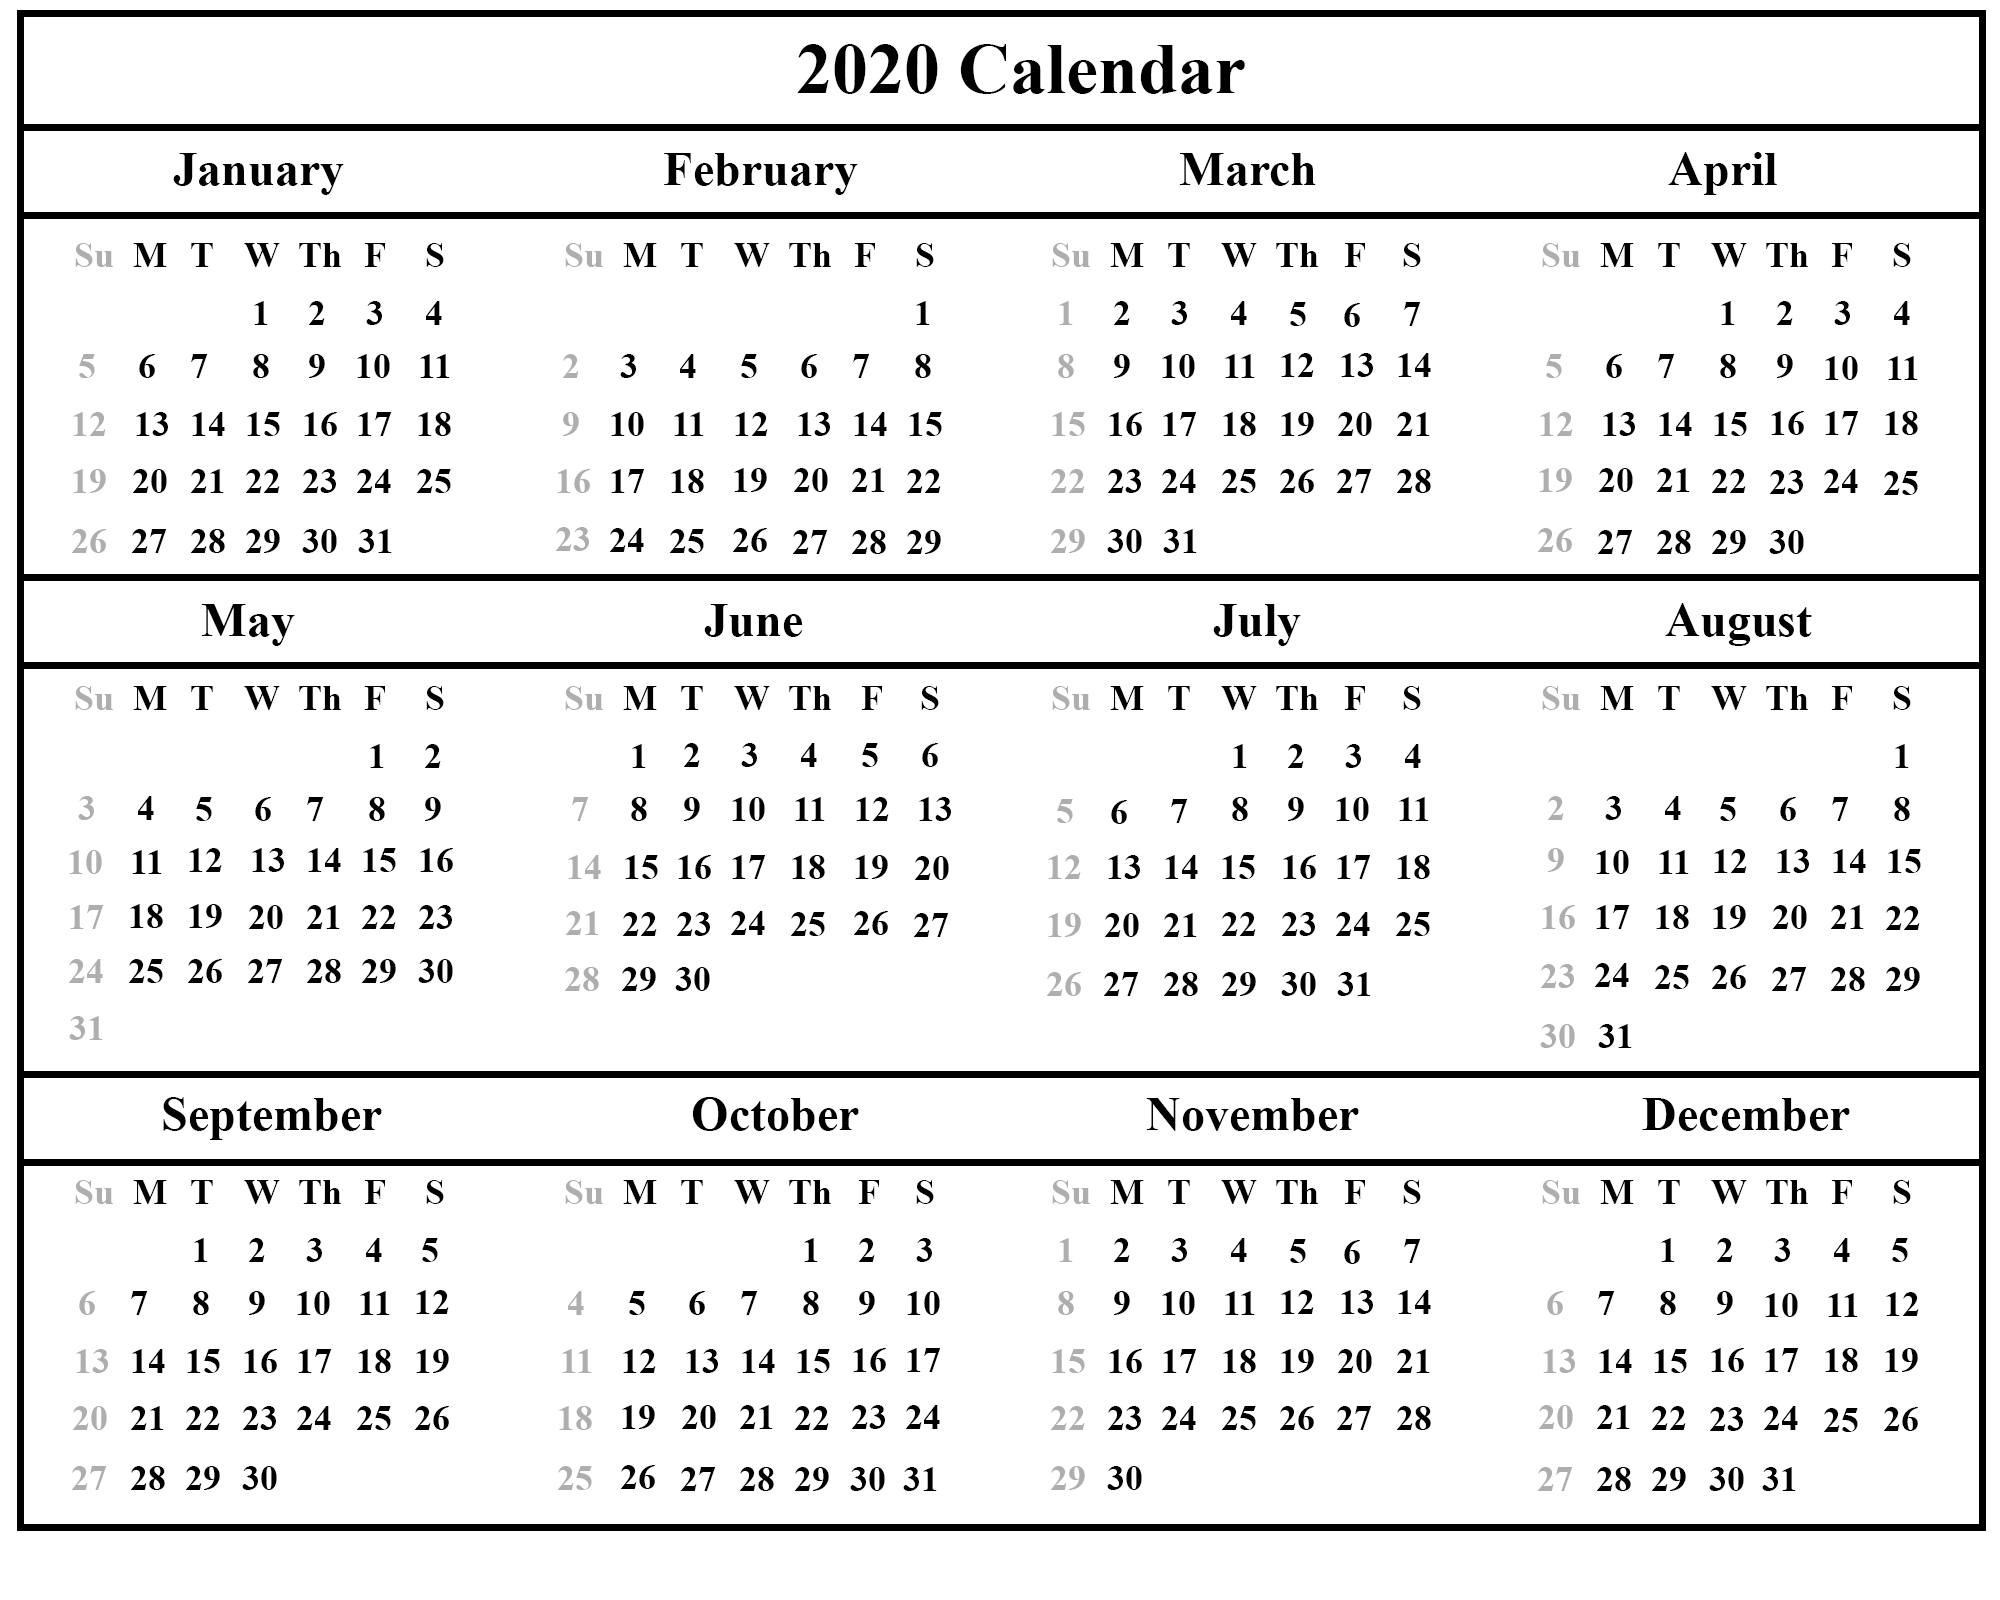 Printable Yearly Calendar 2020 Template With Holidays [Pdf, Word for Printable Year Calendar 2019 - 2020 With Space To Write